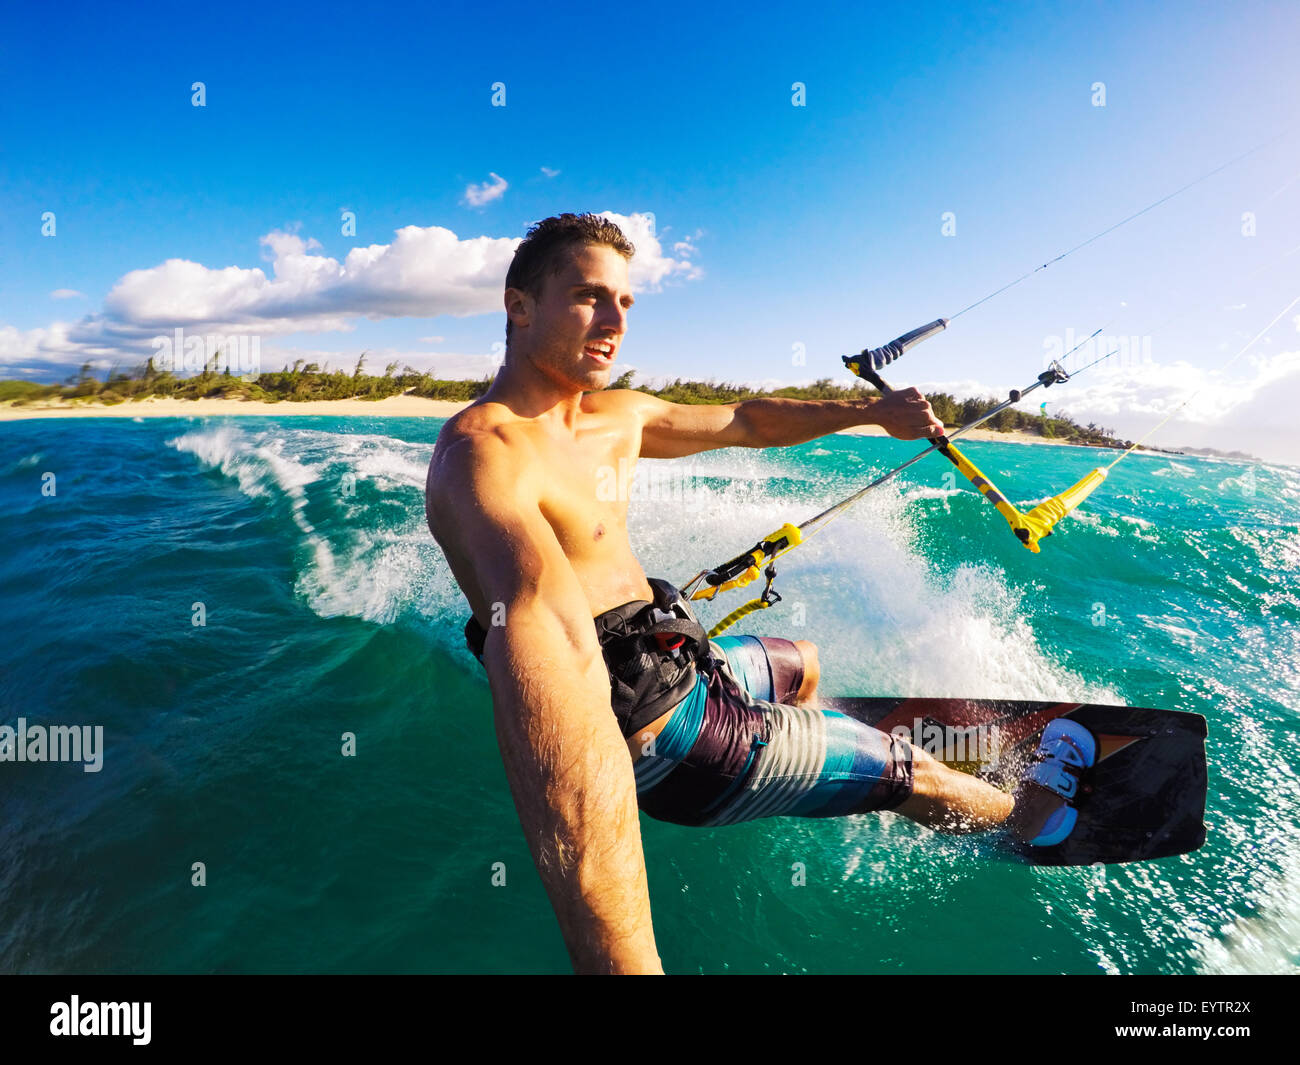 Kiteboarding. Fun in the ocean, Extreme Sport Kitesurfing. POV Angle with Action Camera - Stock Image